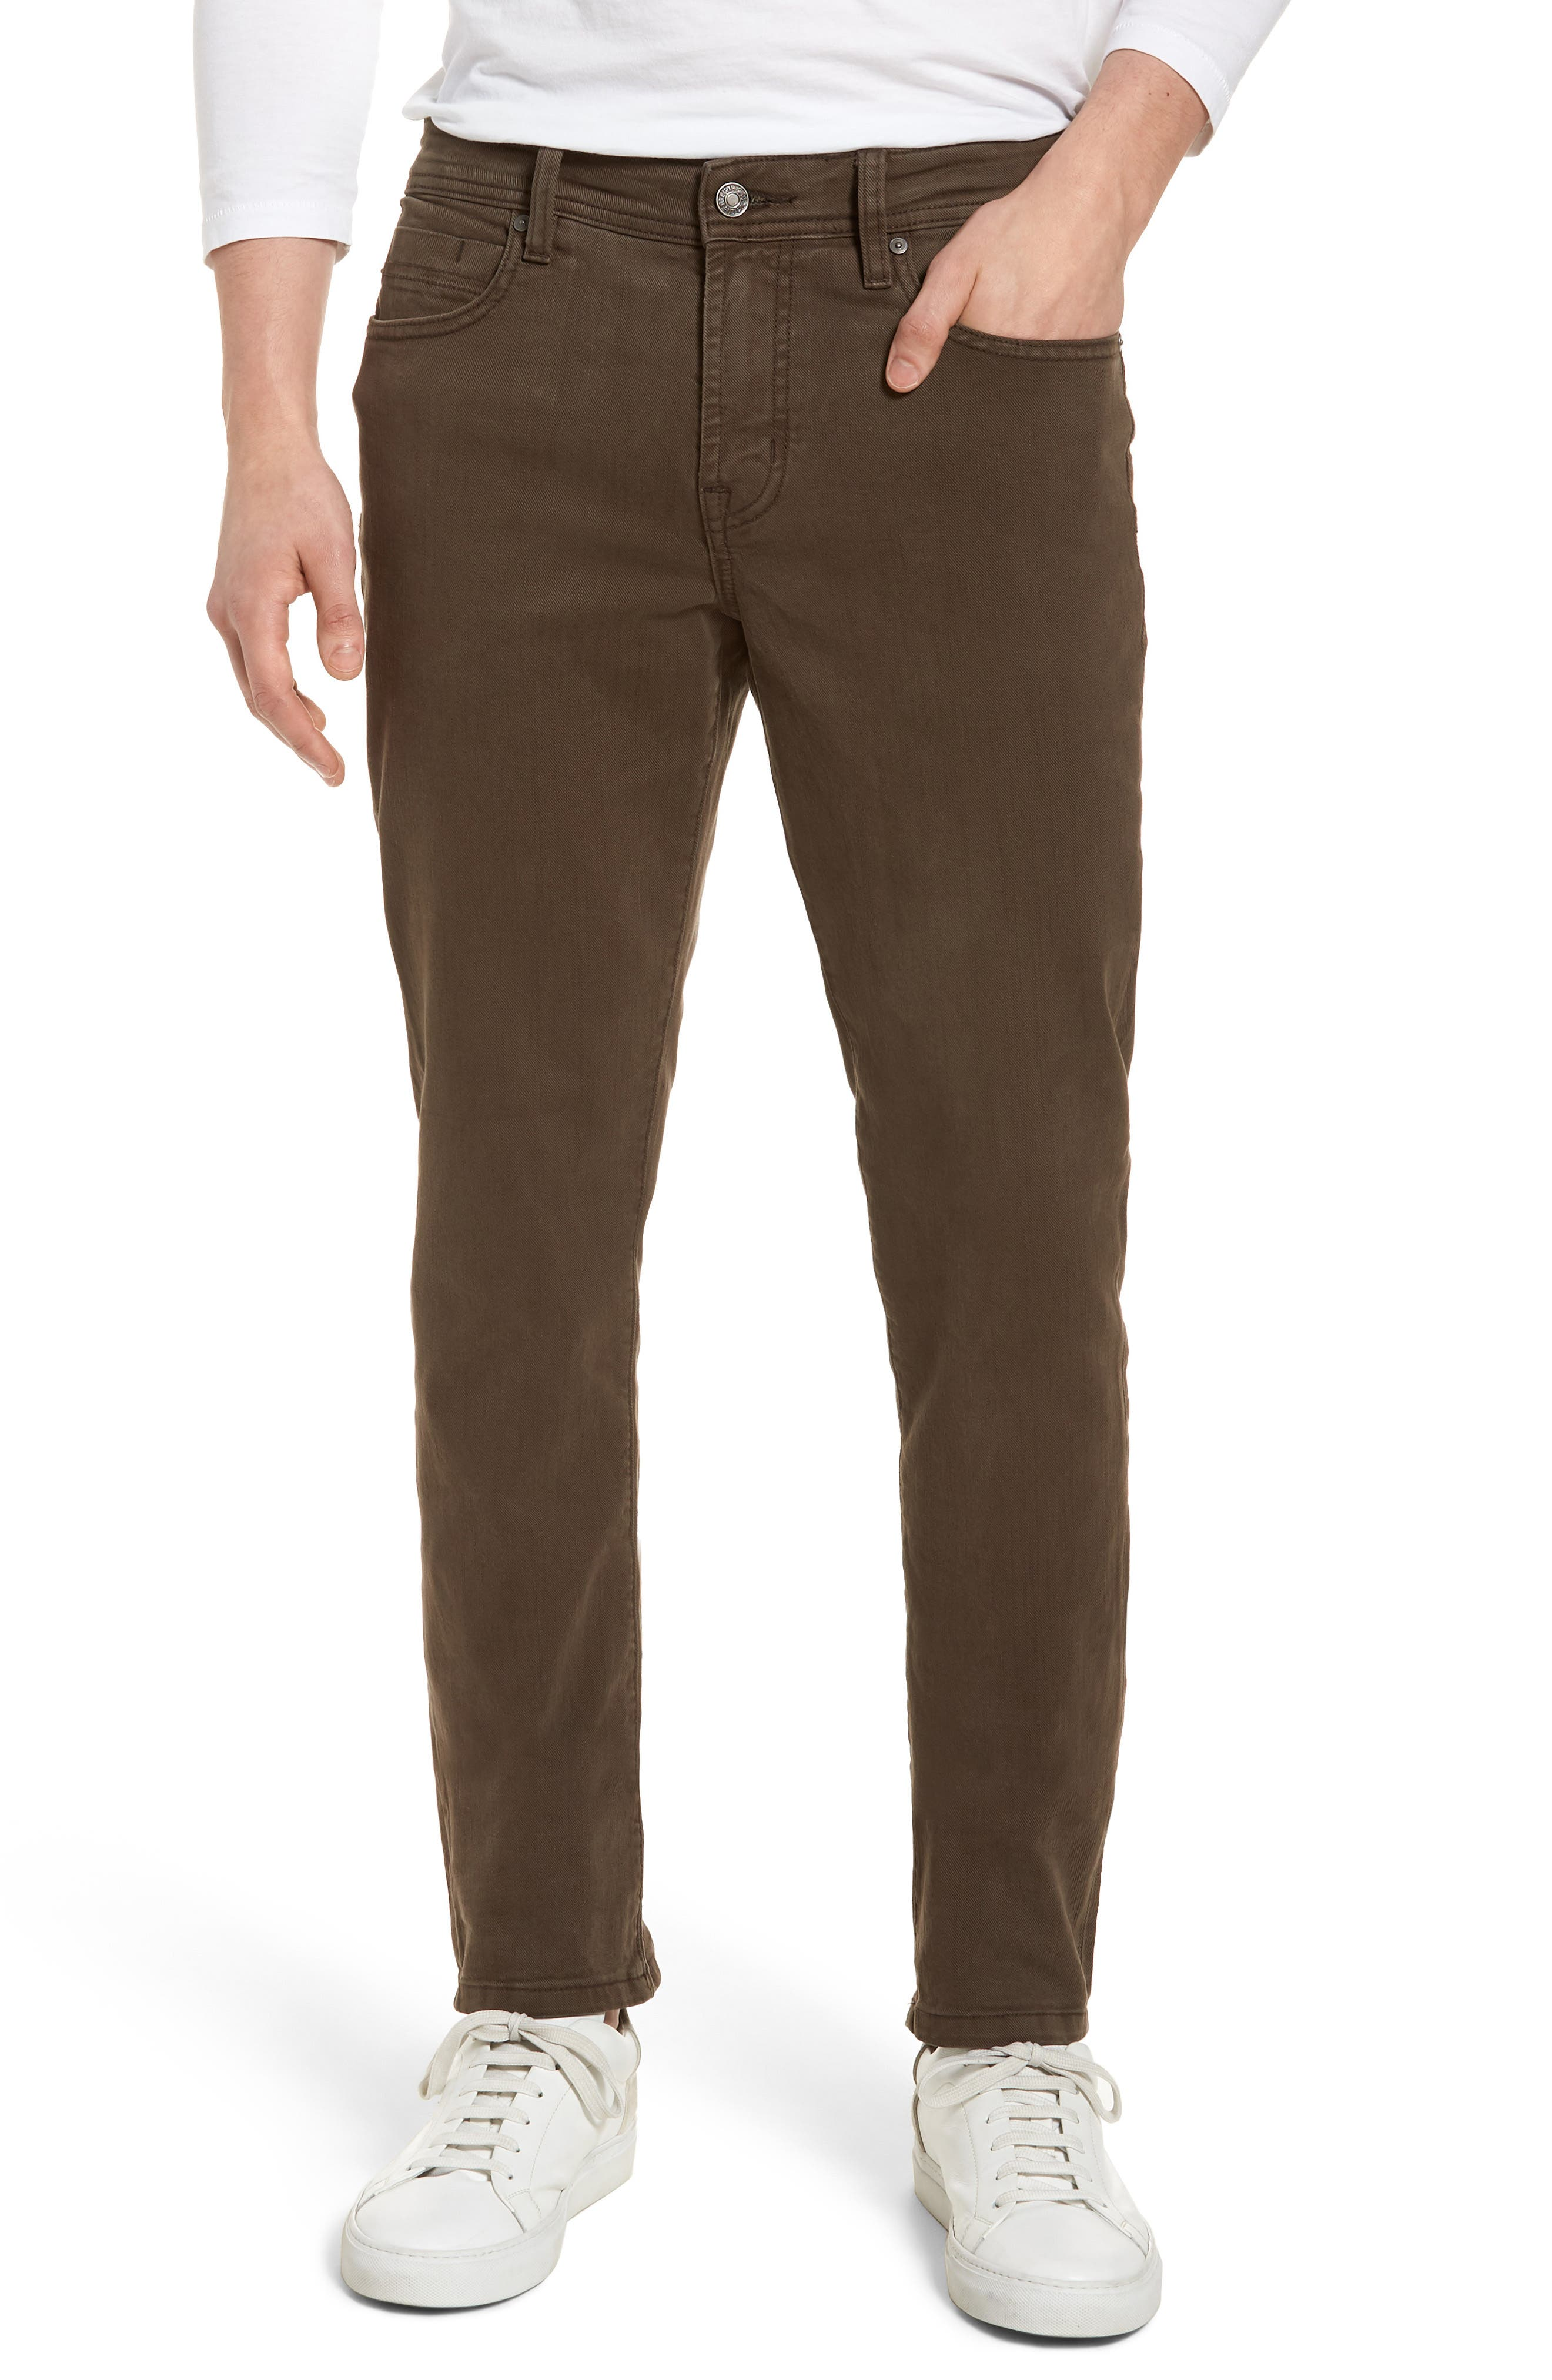 Jeans Co. Kingston Slim Straight Leg Jeans,                             Main thumbnail 1, color,                             Tobacco Leaf